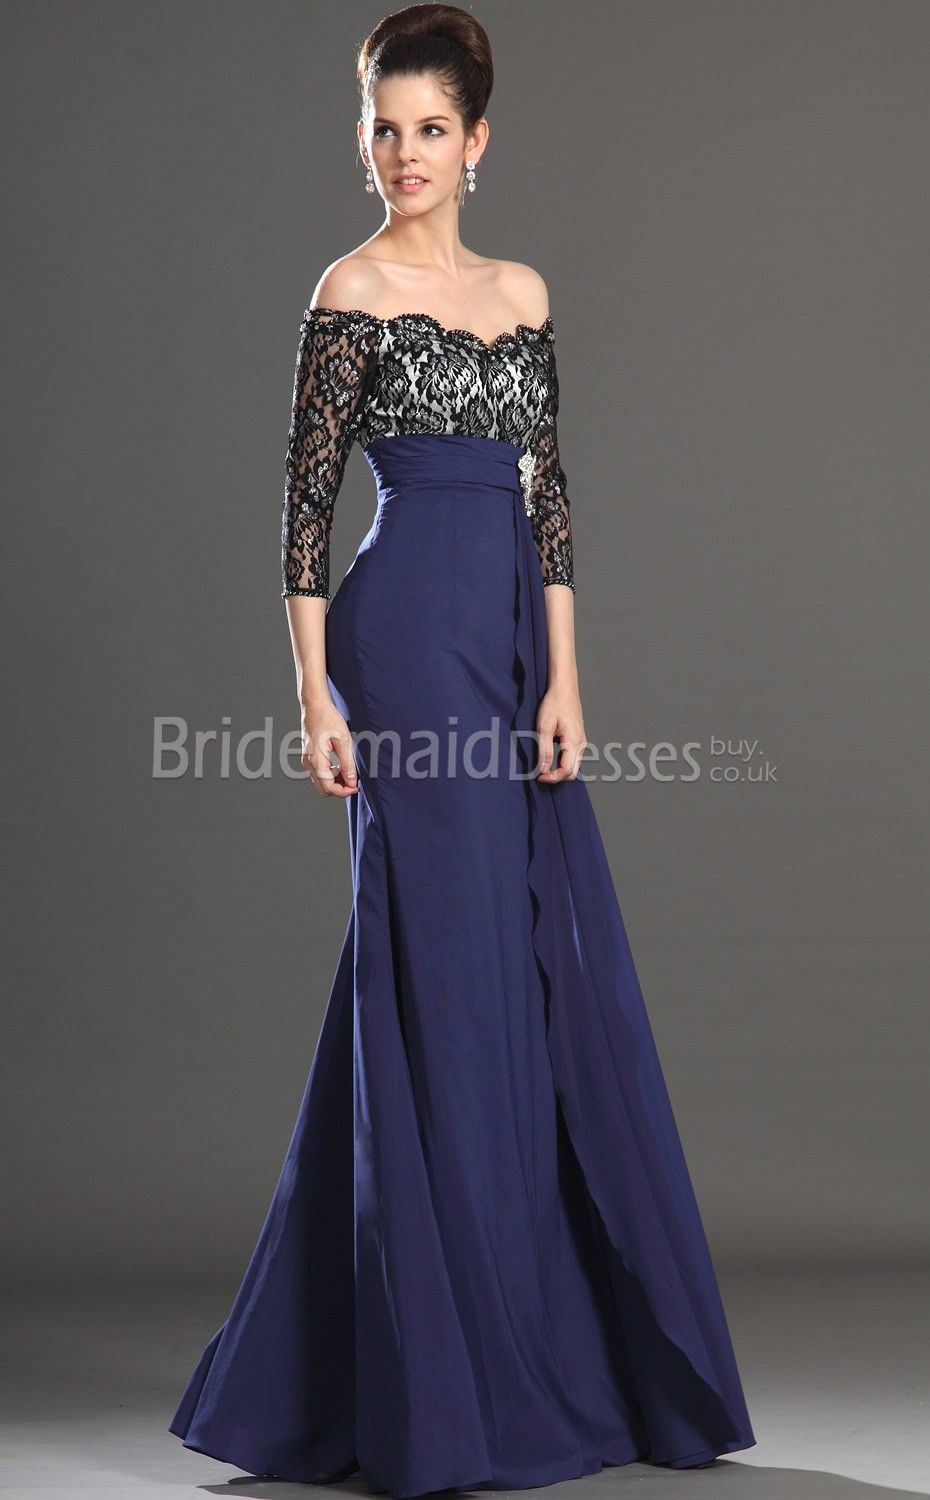 Royal Blue Lace Dresses With Sleeves